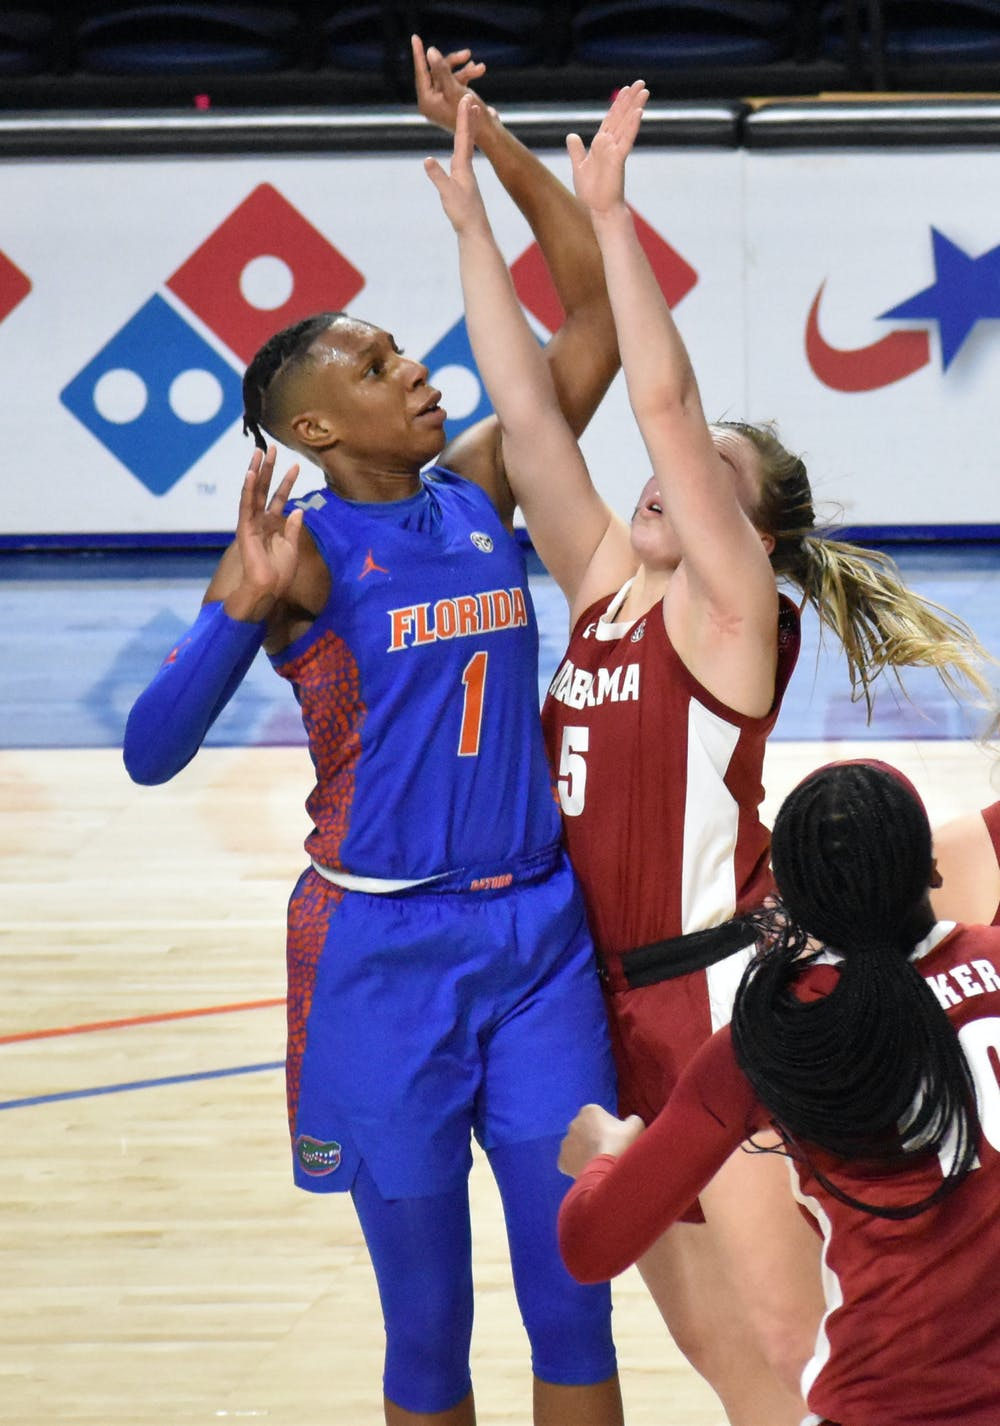 Smith, who became the team's lead scorer in guard Lavender Briggs' absence, had an underwhelming night with only 10 points to her name. Photo from UF-Alabama game Feb. 18.